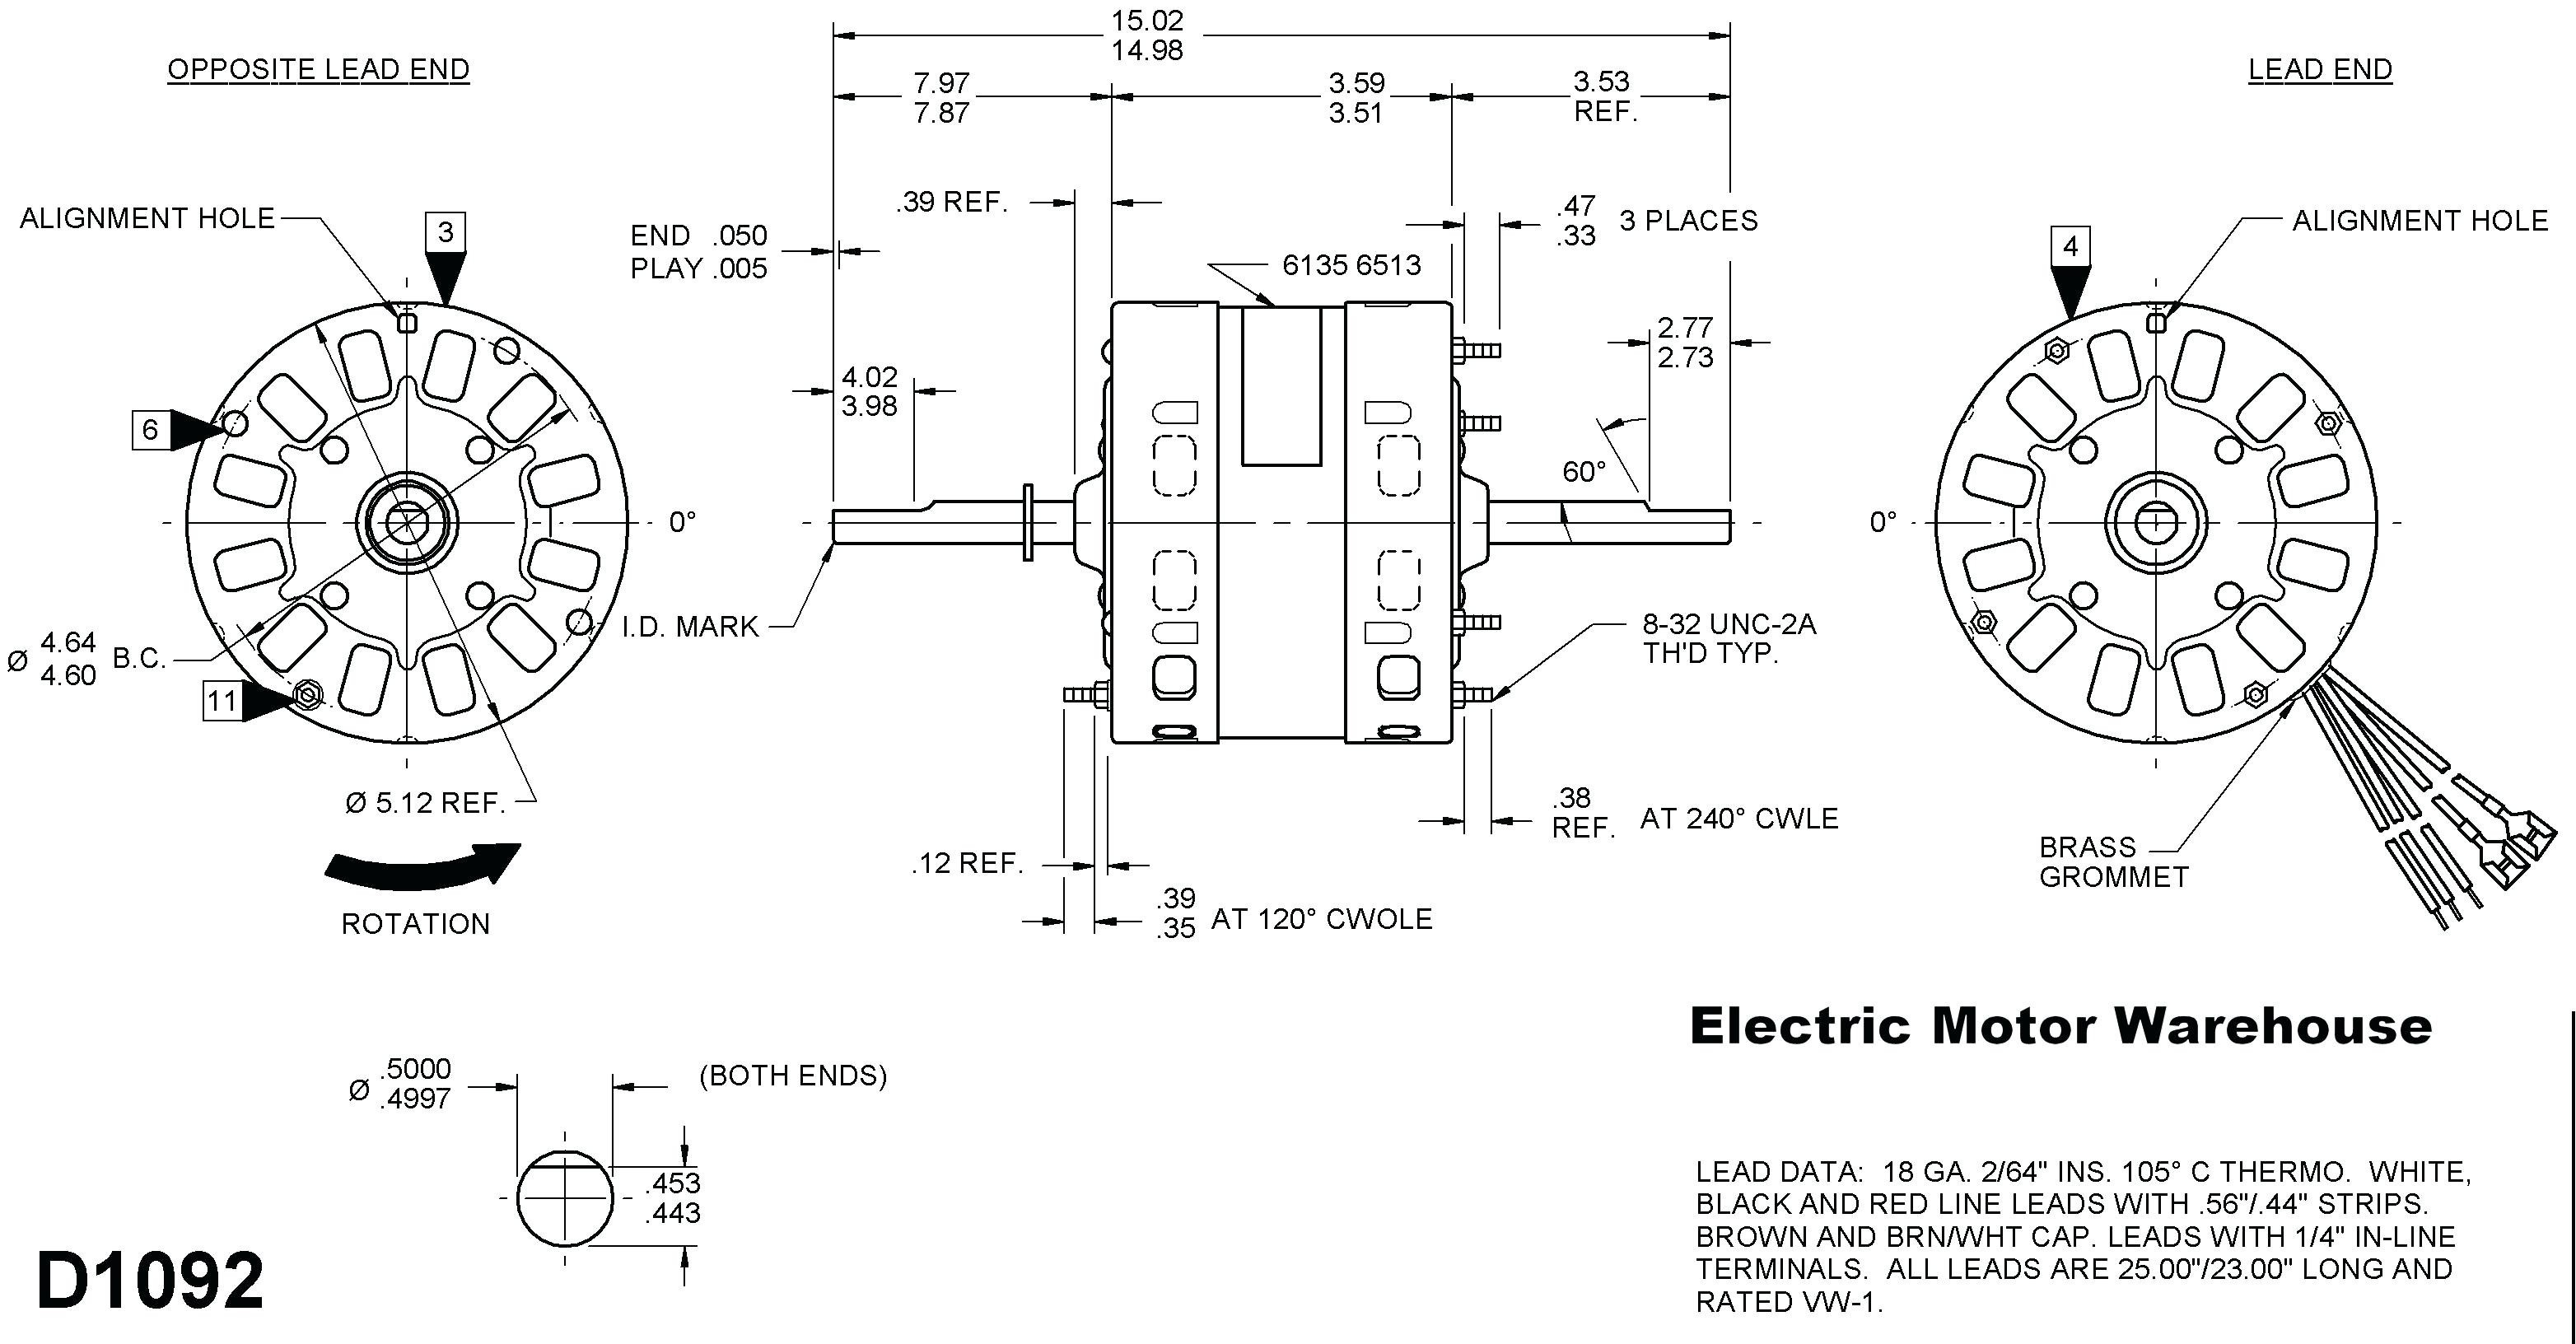 Marathon Motor Schematics | Wiring Diagram on fan motor diagram, 3 wire pc fan wiring diagram, 4-wire oxygen sensor diagram, ceiling fan diagram, hunter fan diagram, 4-wire thermostat diagram, electric fan relay wiring diagram, fan limit diagram, capacitor diagram,